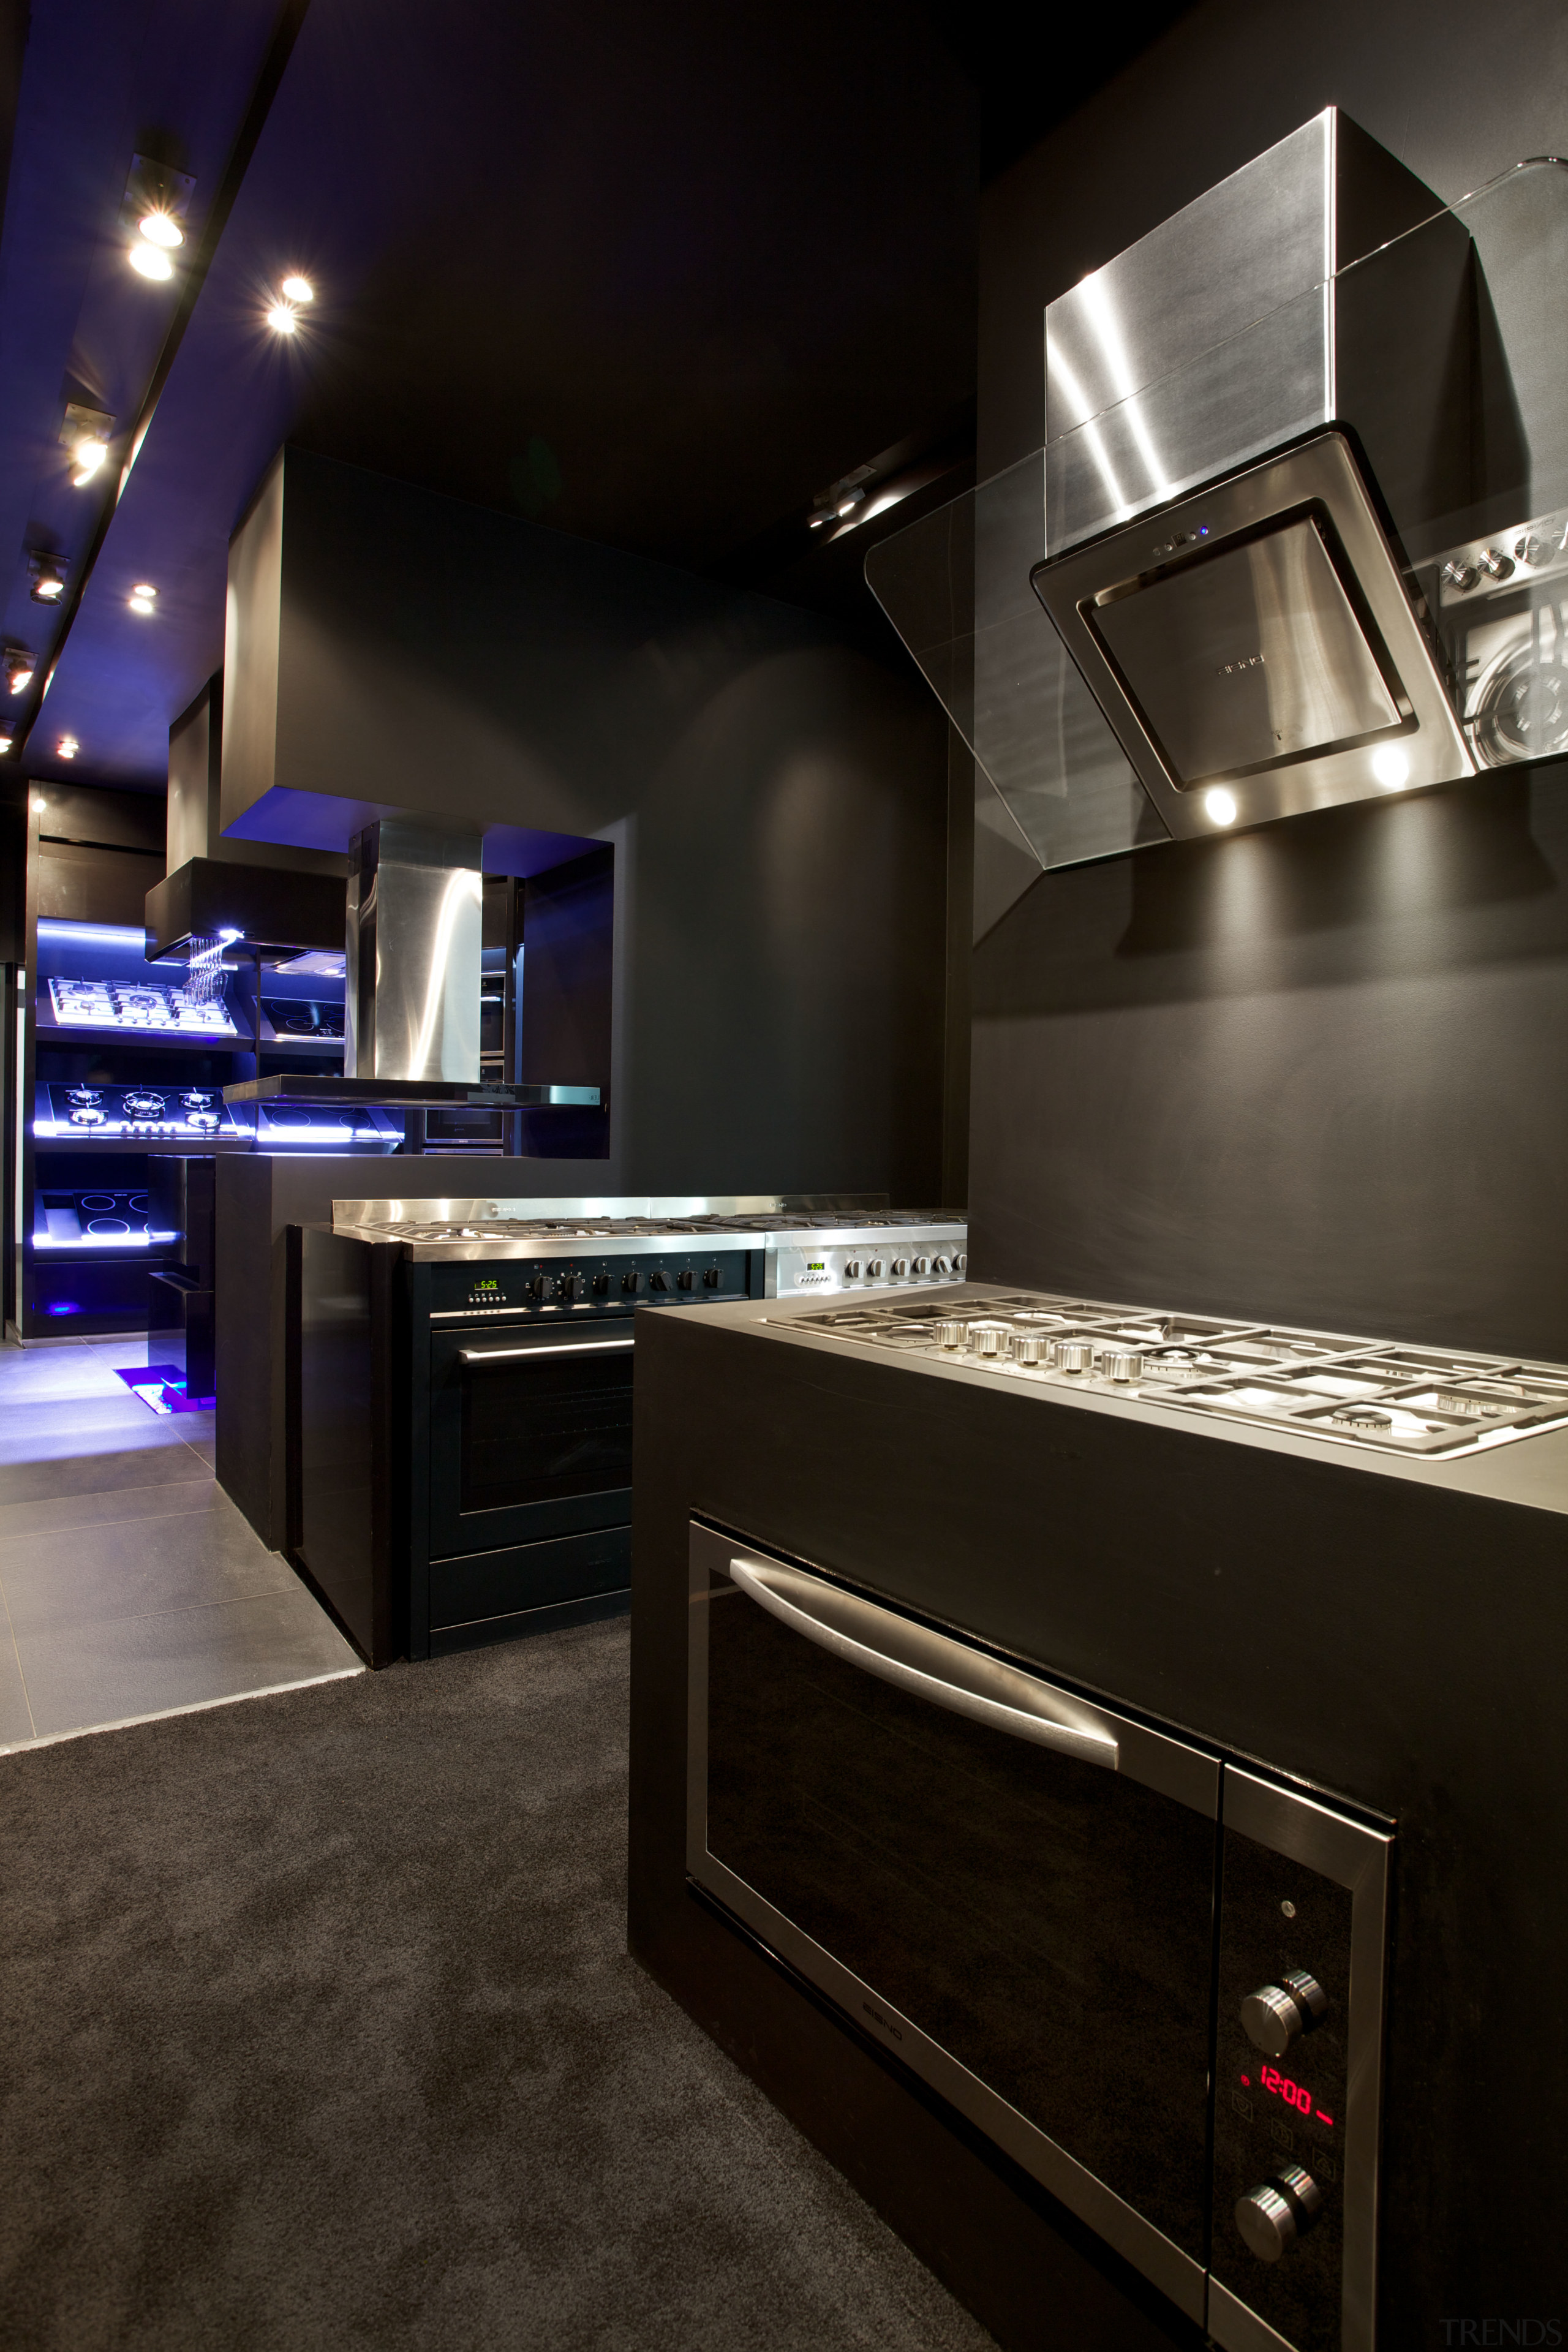 At the Eisno showroom, you can compare different countertop, interior design, kitchen, lighting, room, black